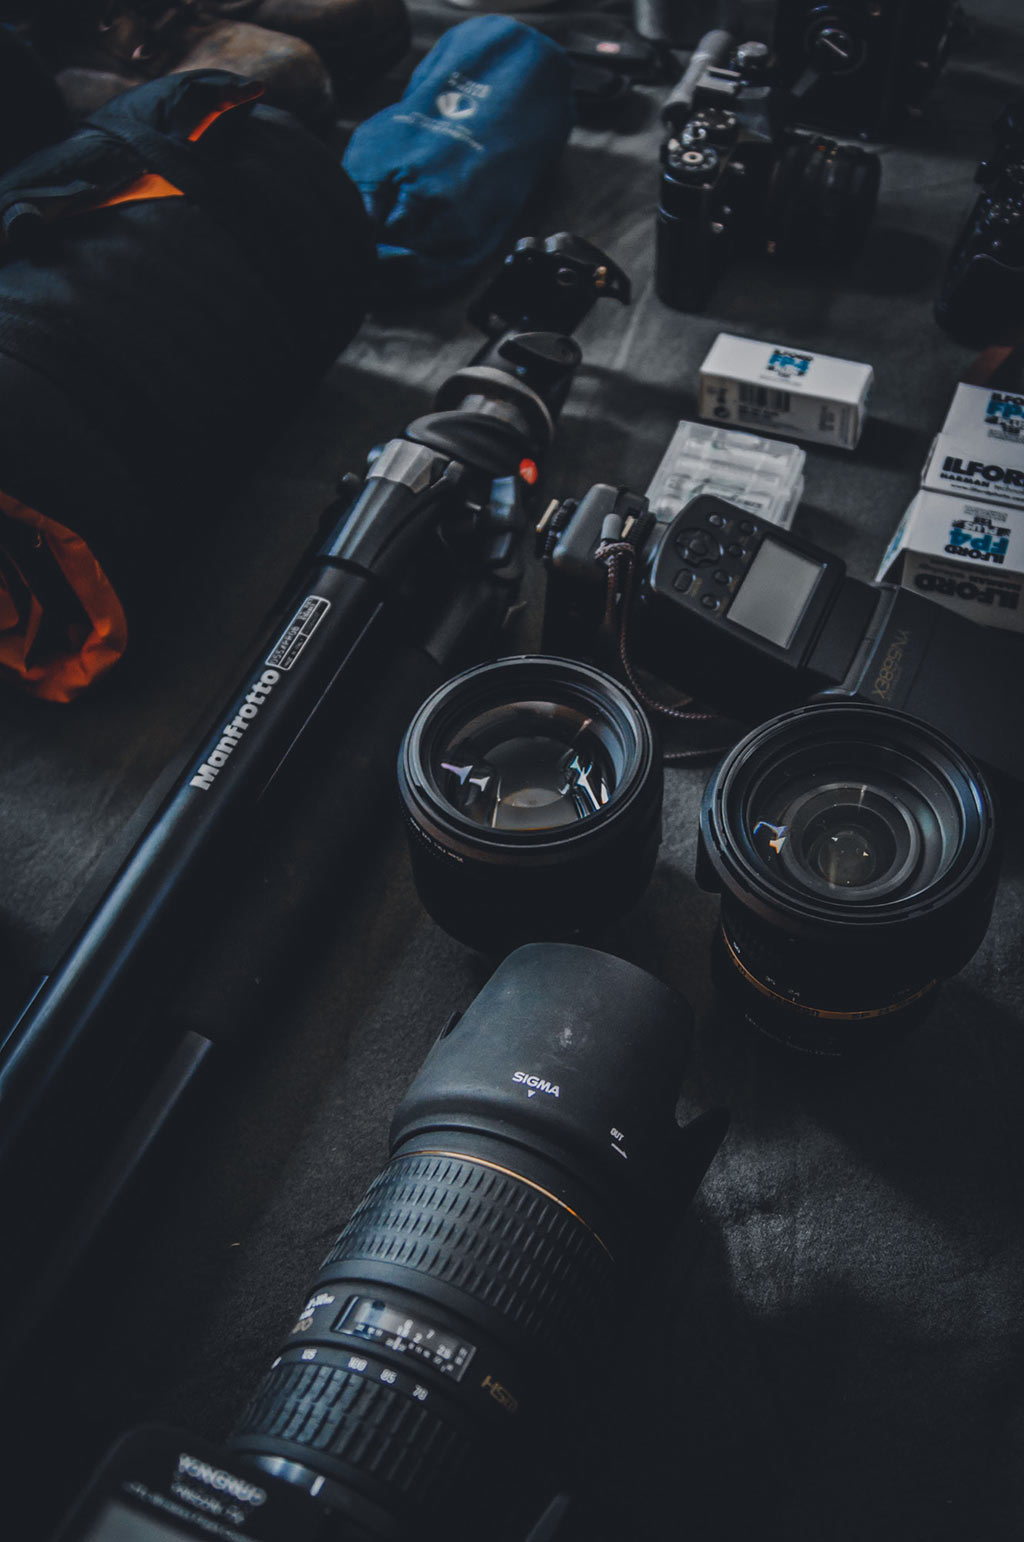 Camera Gear For Travel - Vacation Photography Guide